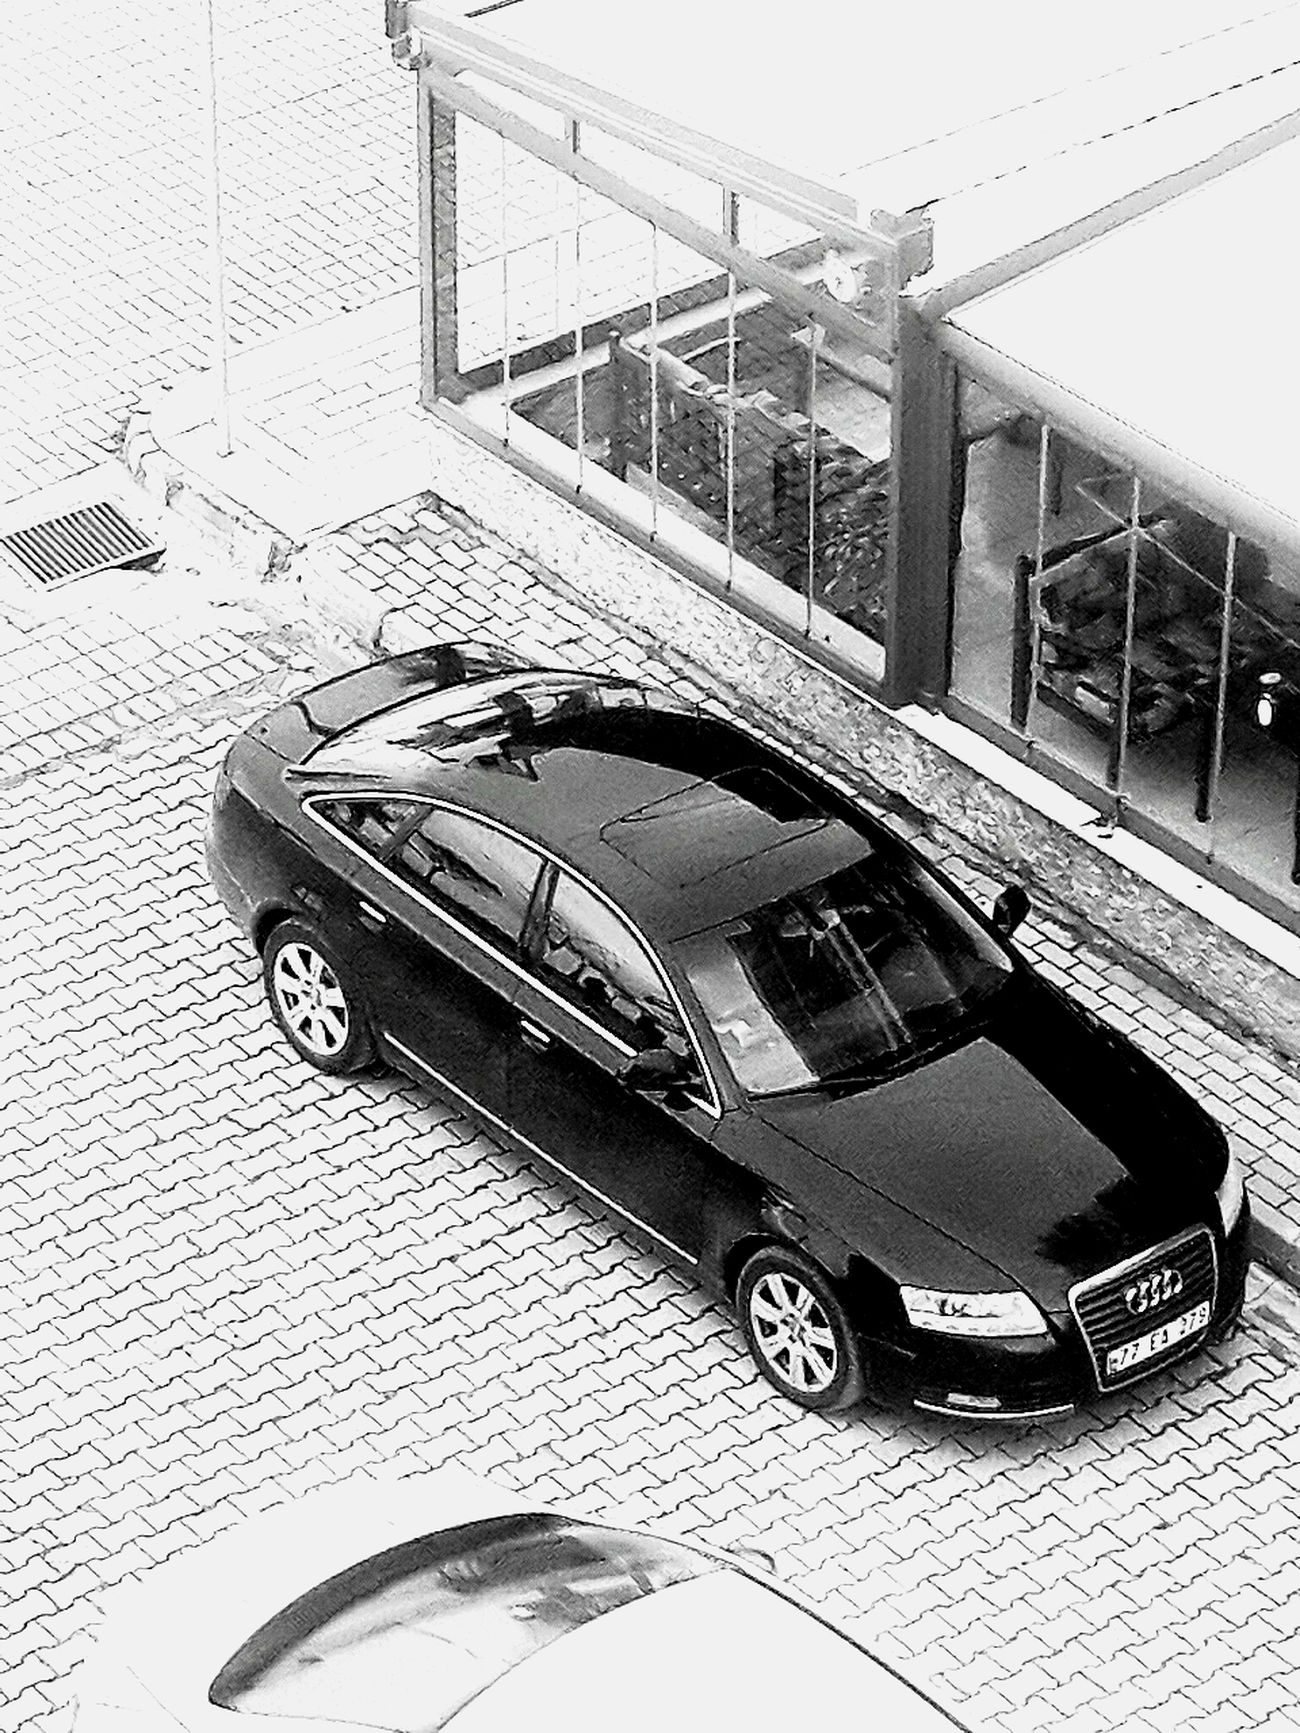 Transportation Mode Of Transport High Angle View Car Outdoors Day Architecture Bridge - Man Made Structure No People BlackCar Blackandwhite Streetphotography Street Photography Black And White Bw_collection Streetphoto_bw Eye4blackandwhite Eye4photography Light And Shadows Audi A6 Audi Love Elbetbirgun